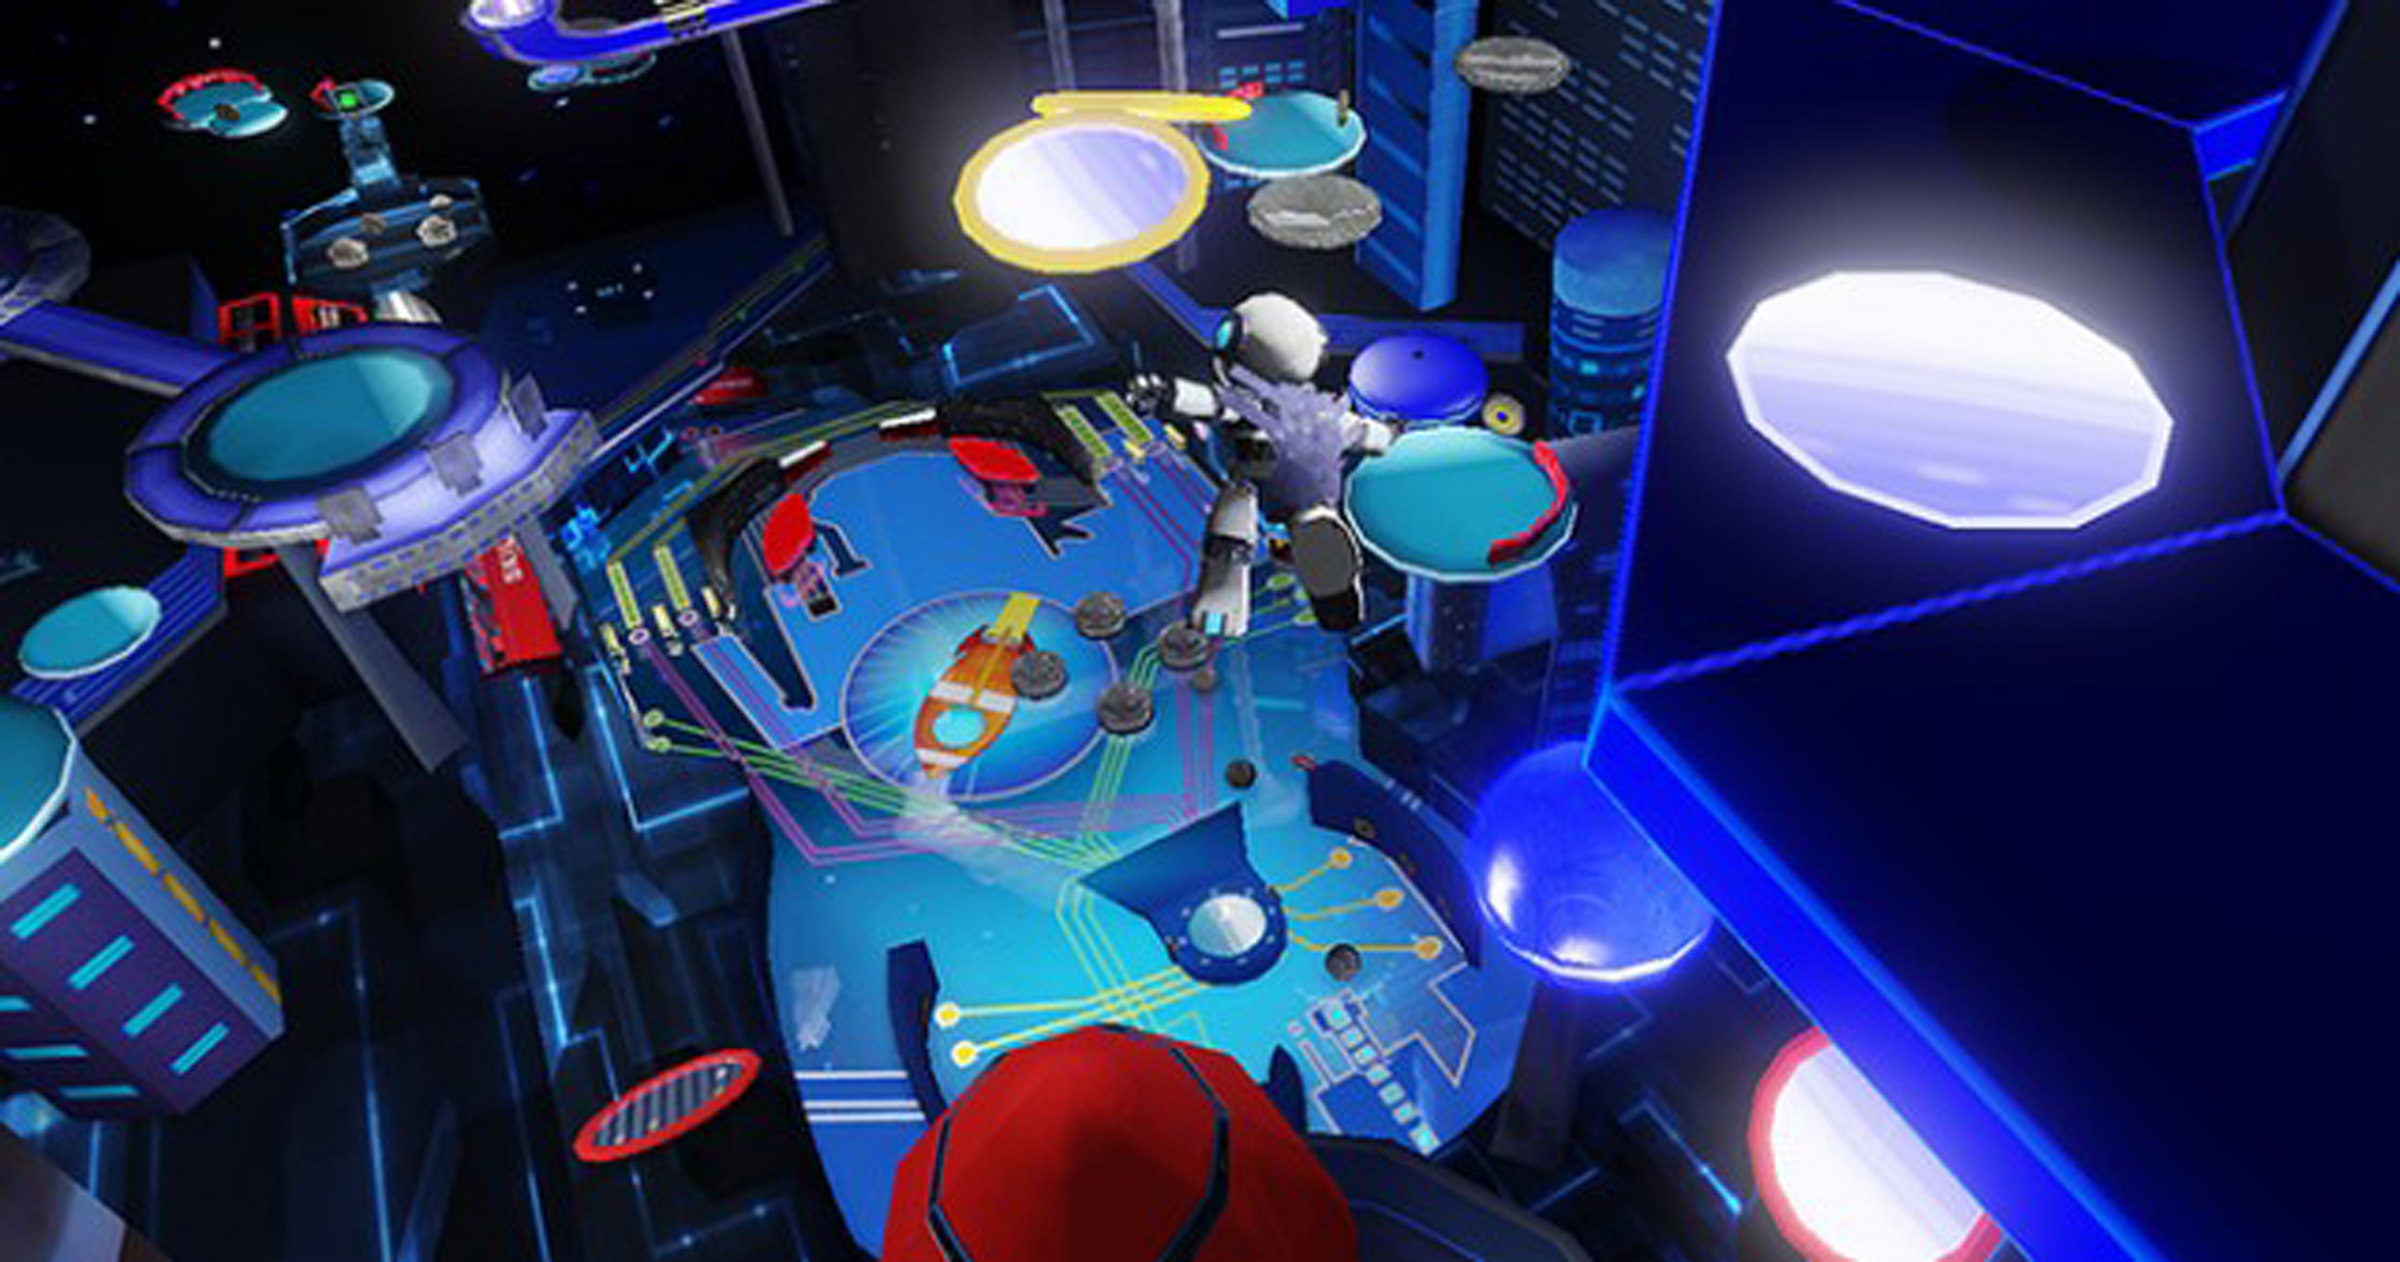 Robot Pinball Escape, a game created by U graduate students in the Master Games Studio, was published in 2012.